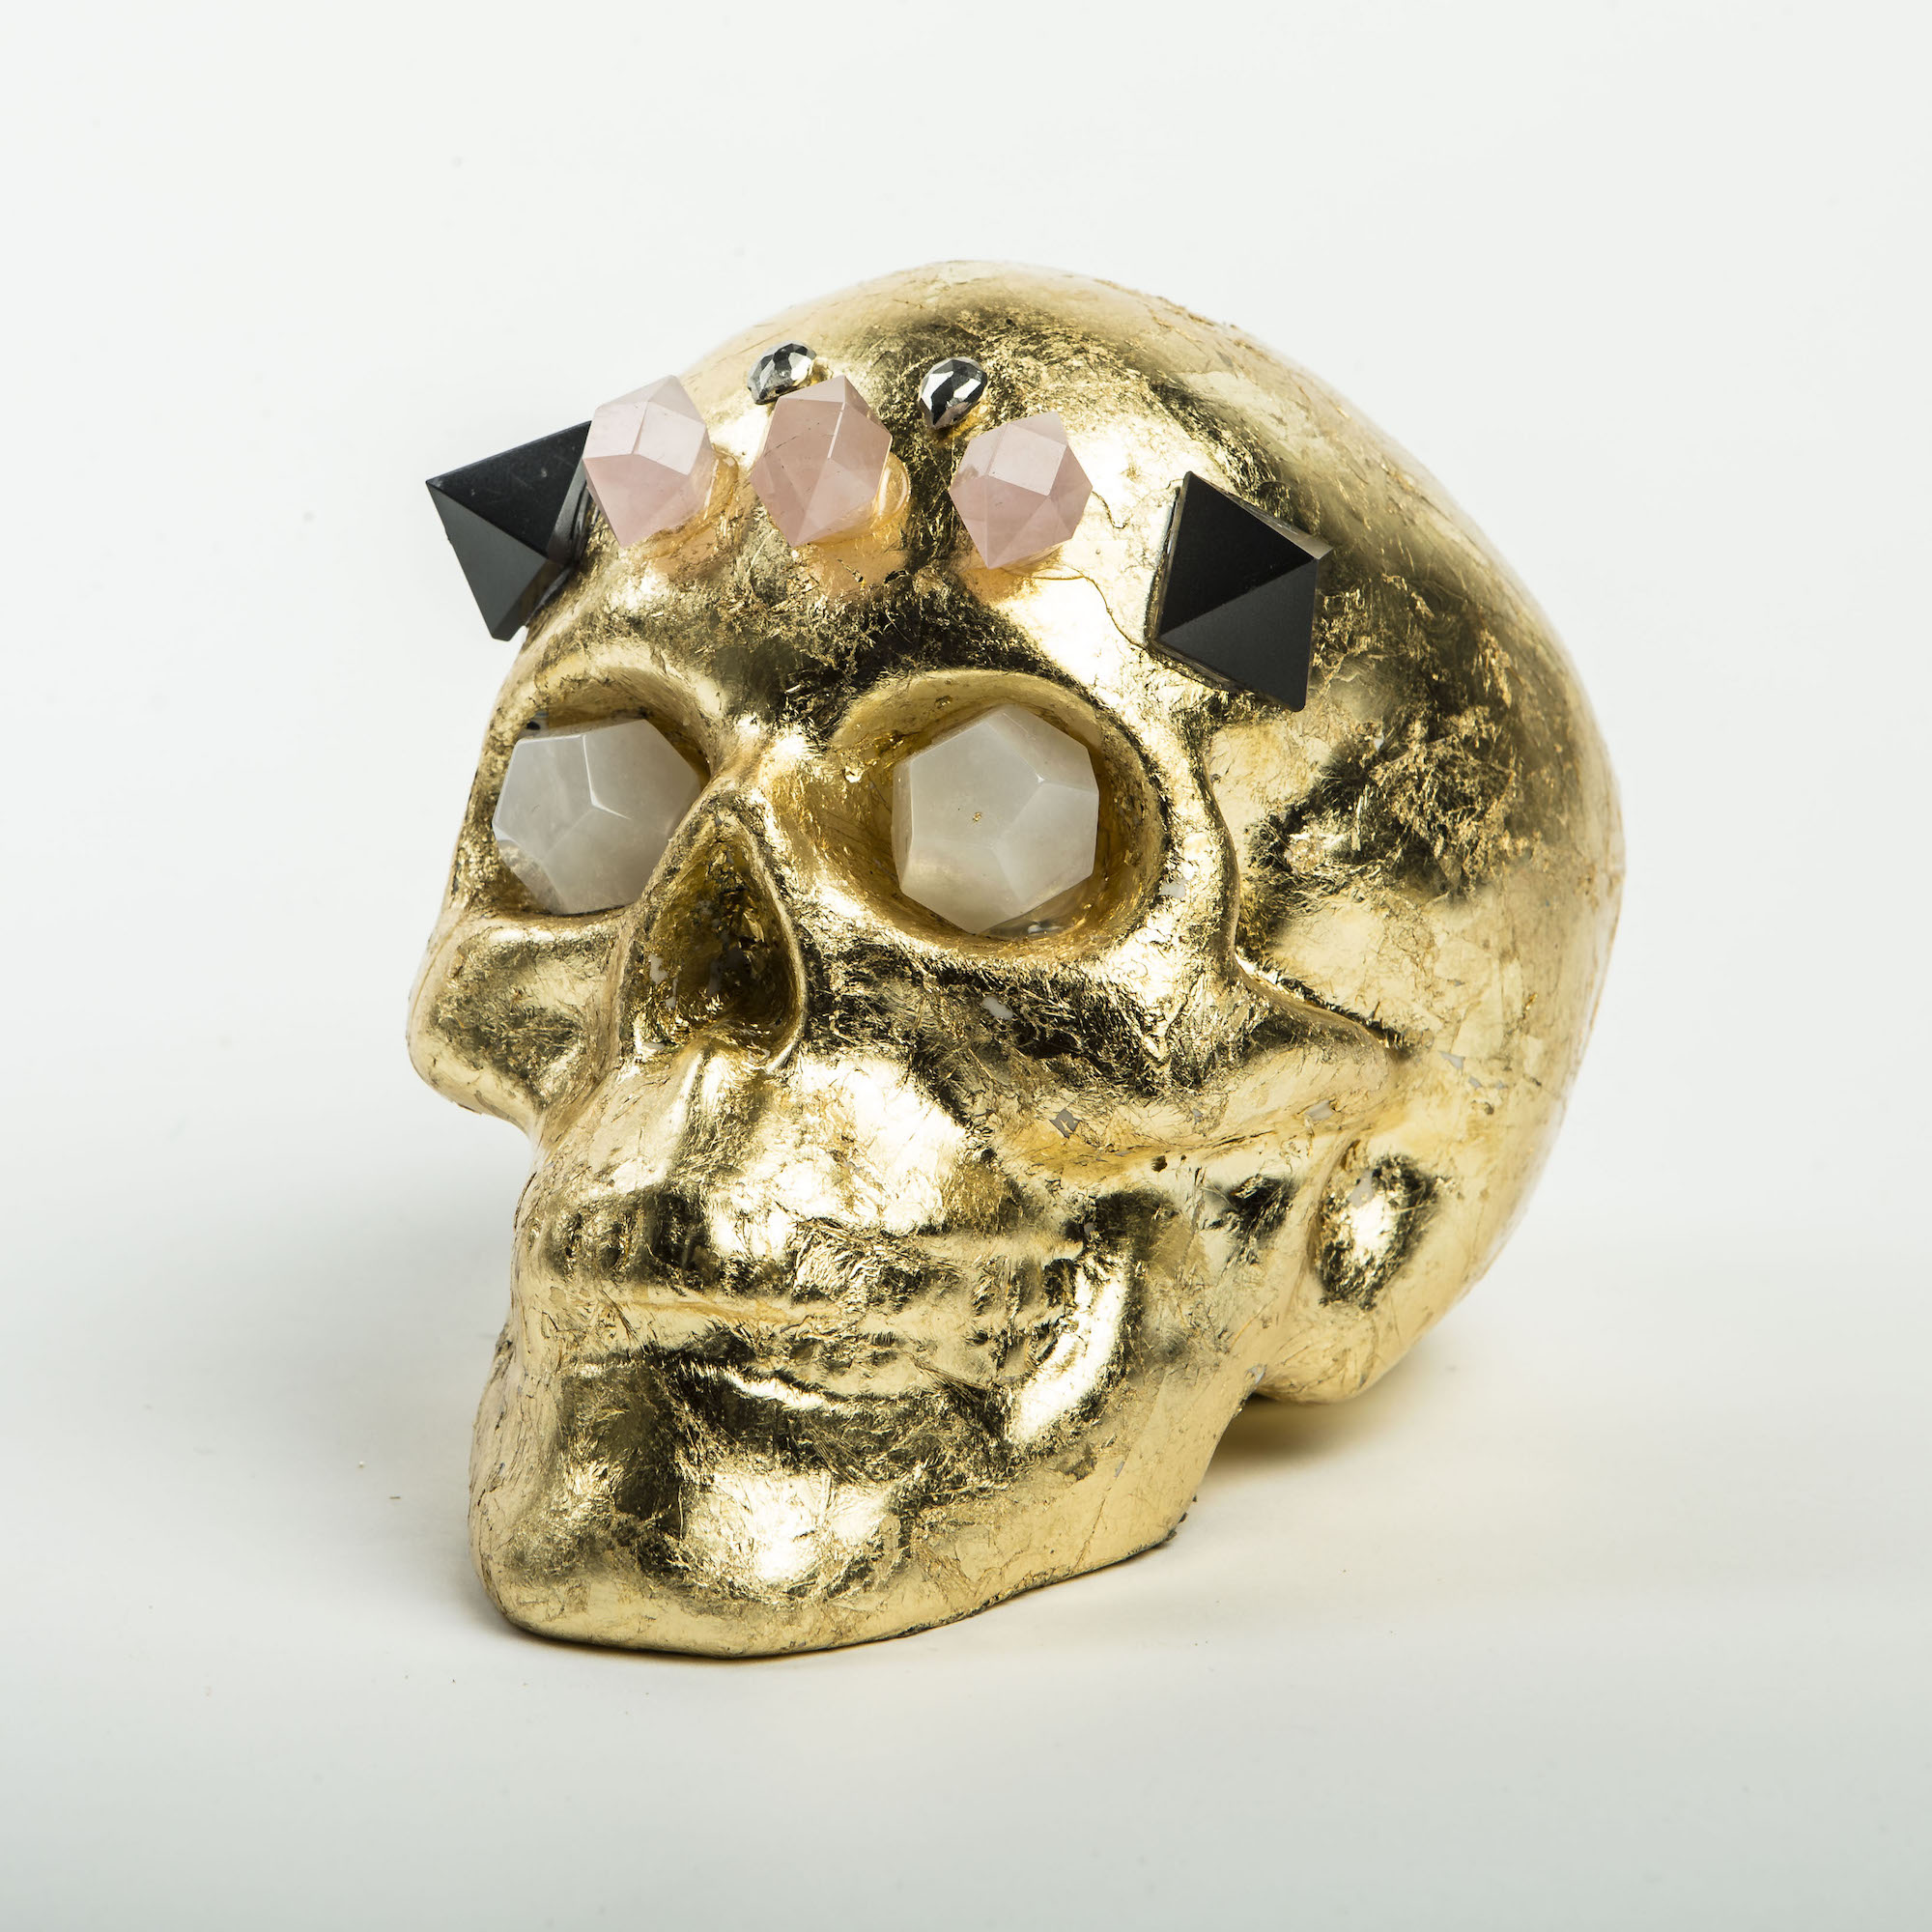 Pulp Home - Studded Gold Skull